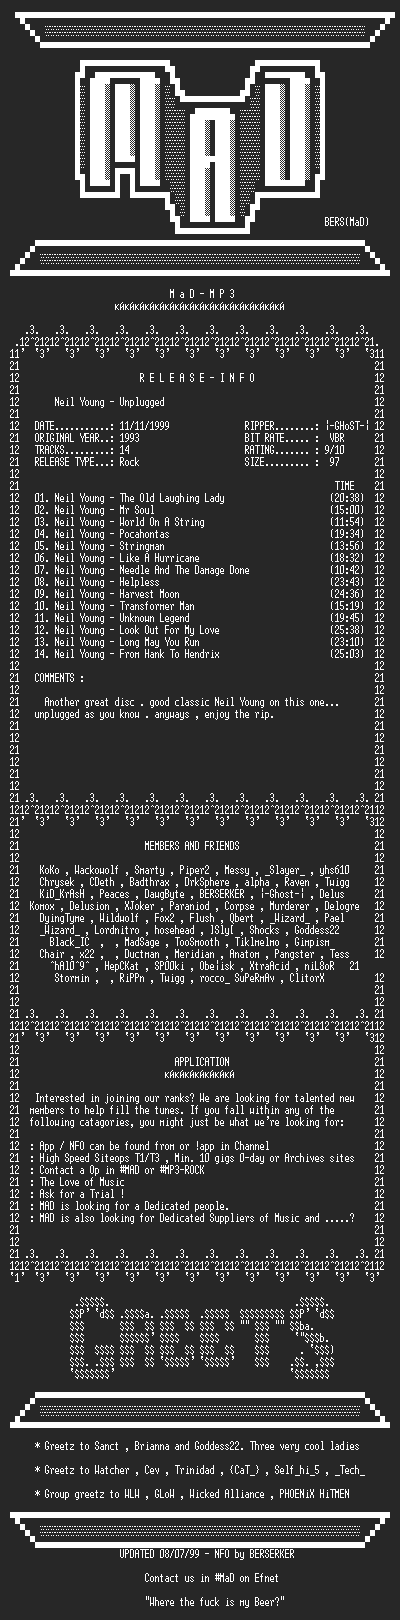 NFO file for Neil_Young_-_Unplugged_(1993)-MAD